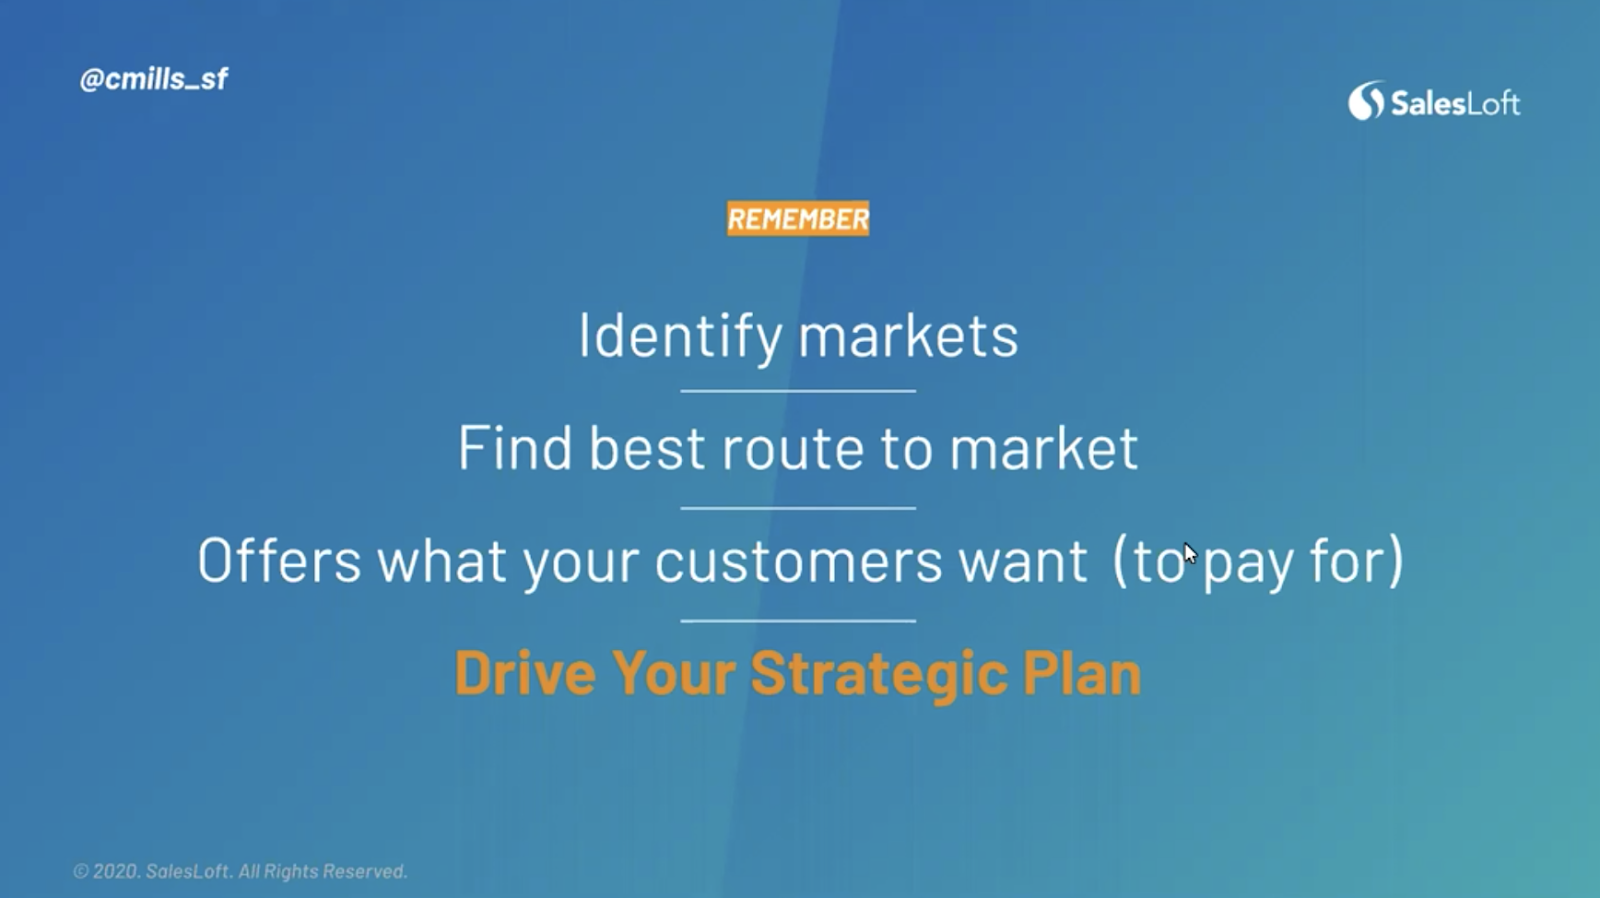 Remember: identify markers, find the best route to market, and offer what your customers want to drive your strategic plan.